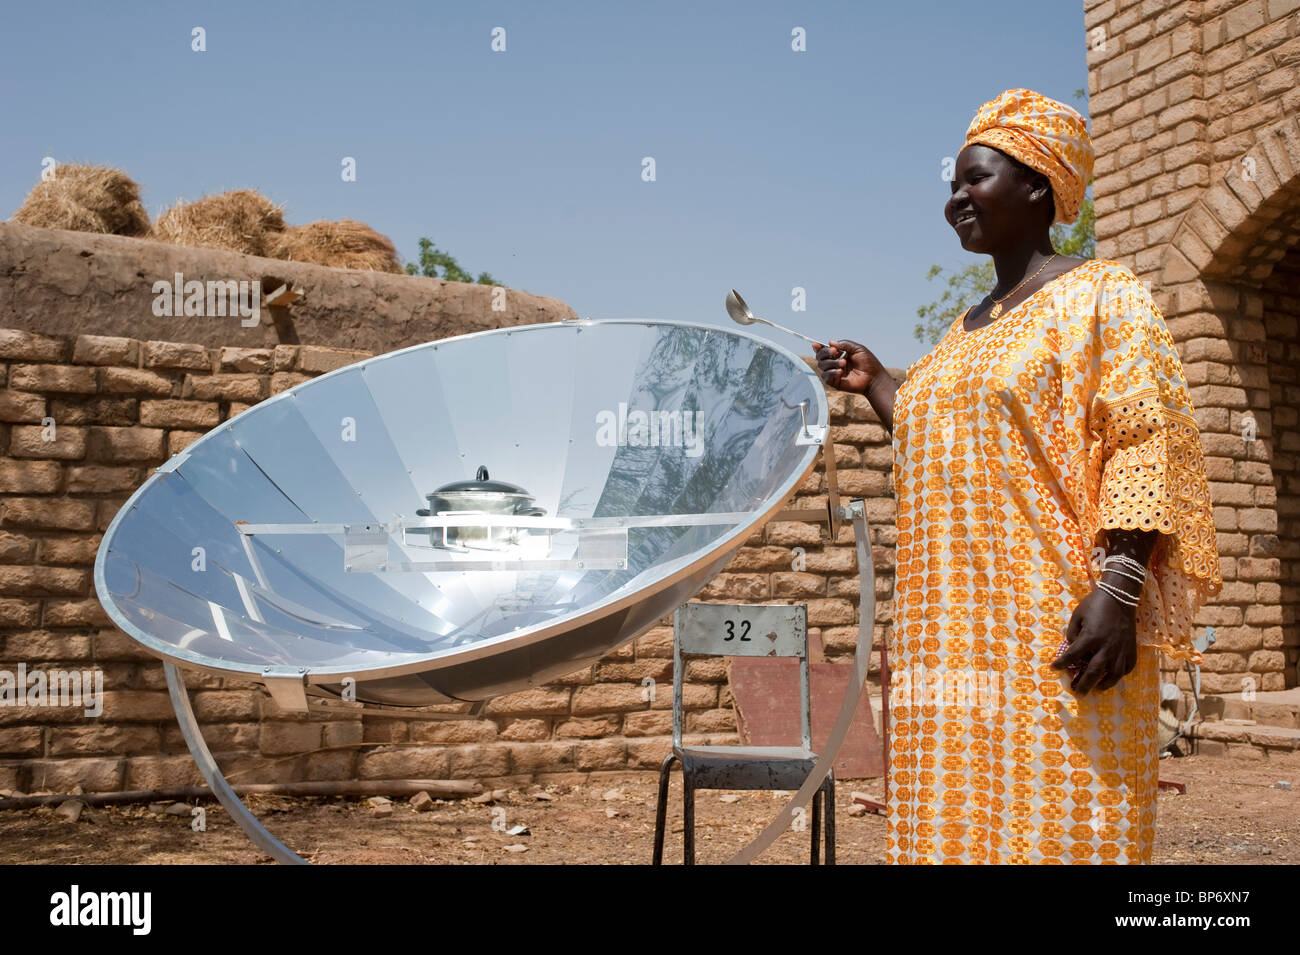 West Africa Mali Bandiagara in Dogon land, woman with solar cooker preparing food - Stock Image